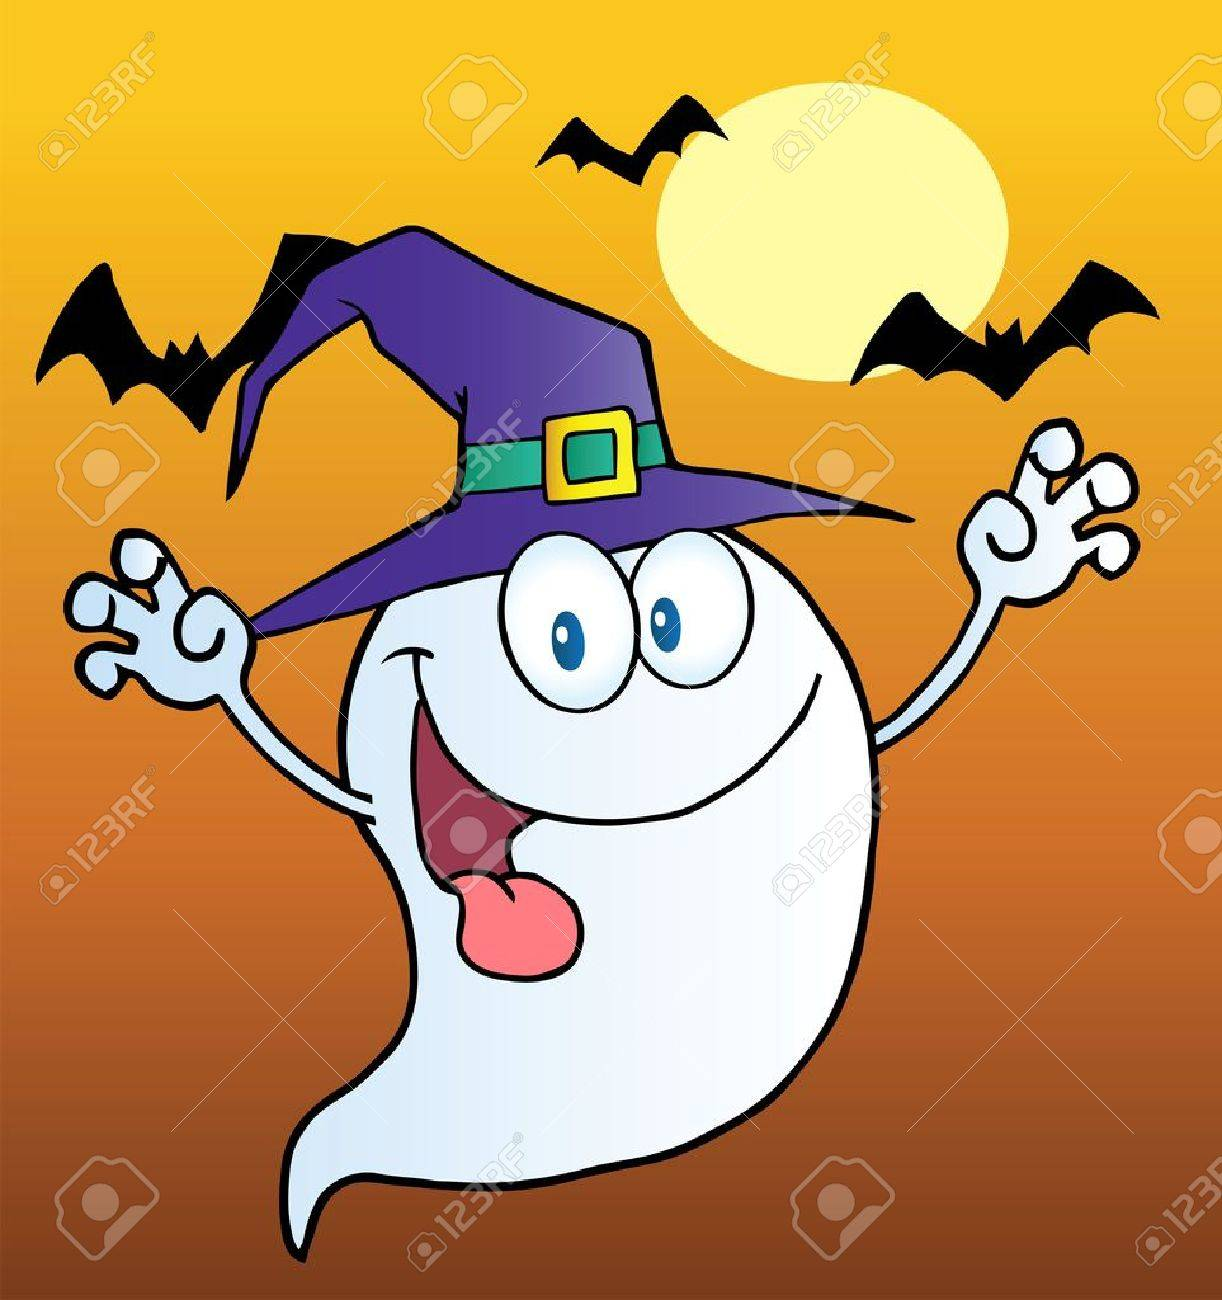 Spooky Ghost Wearing A Witch Hat Over Bats On Orange Stock Vector - 10748931